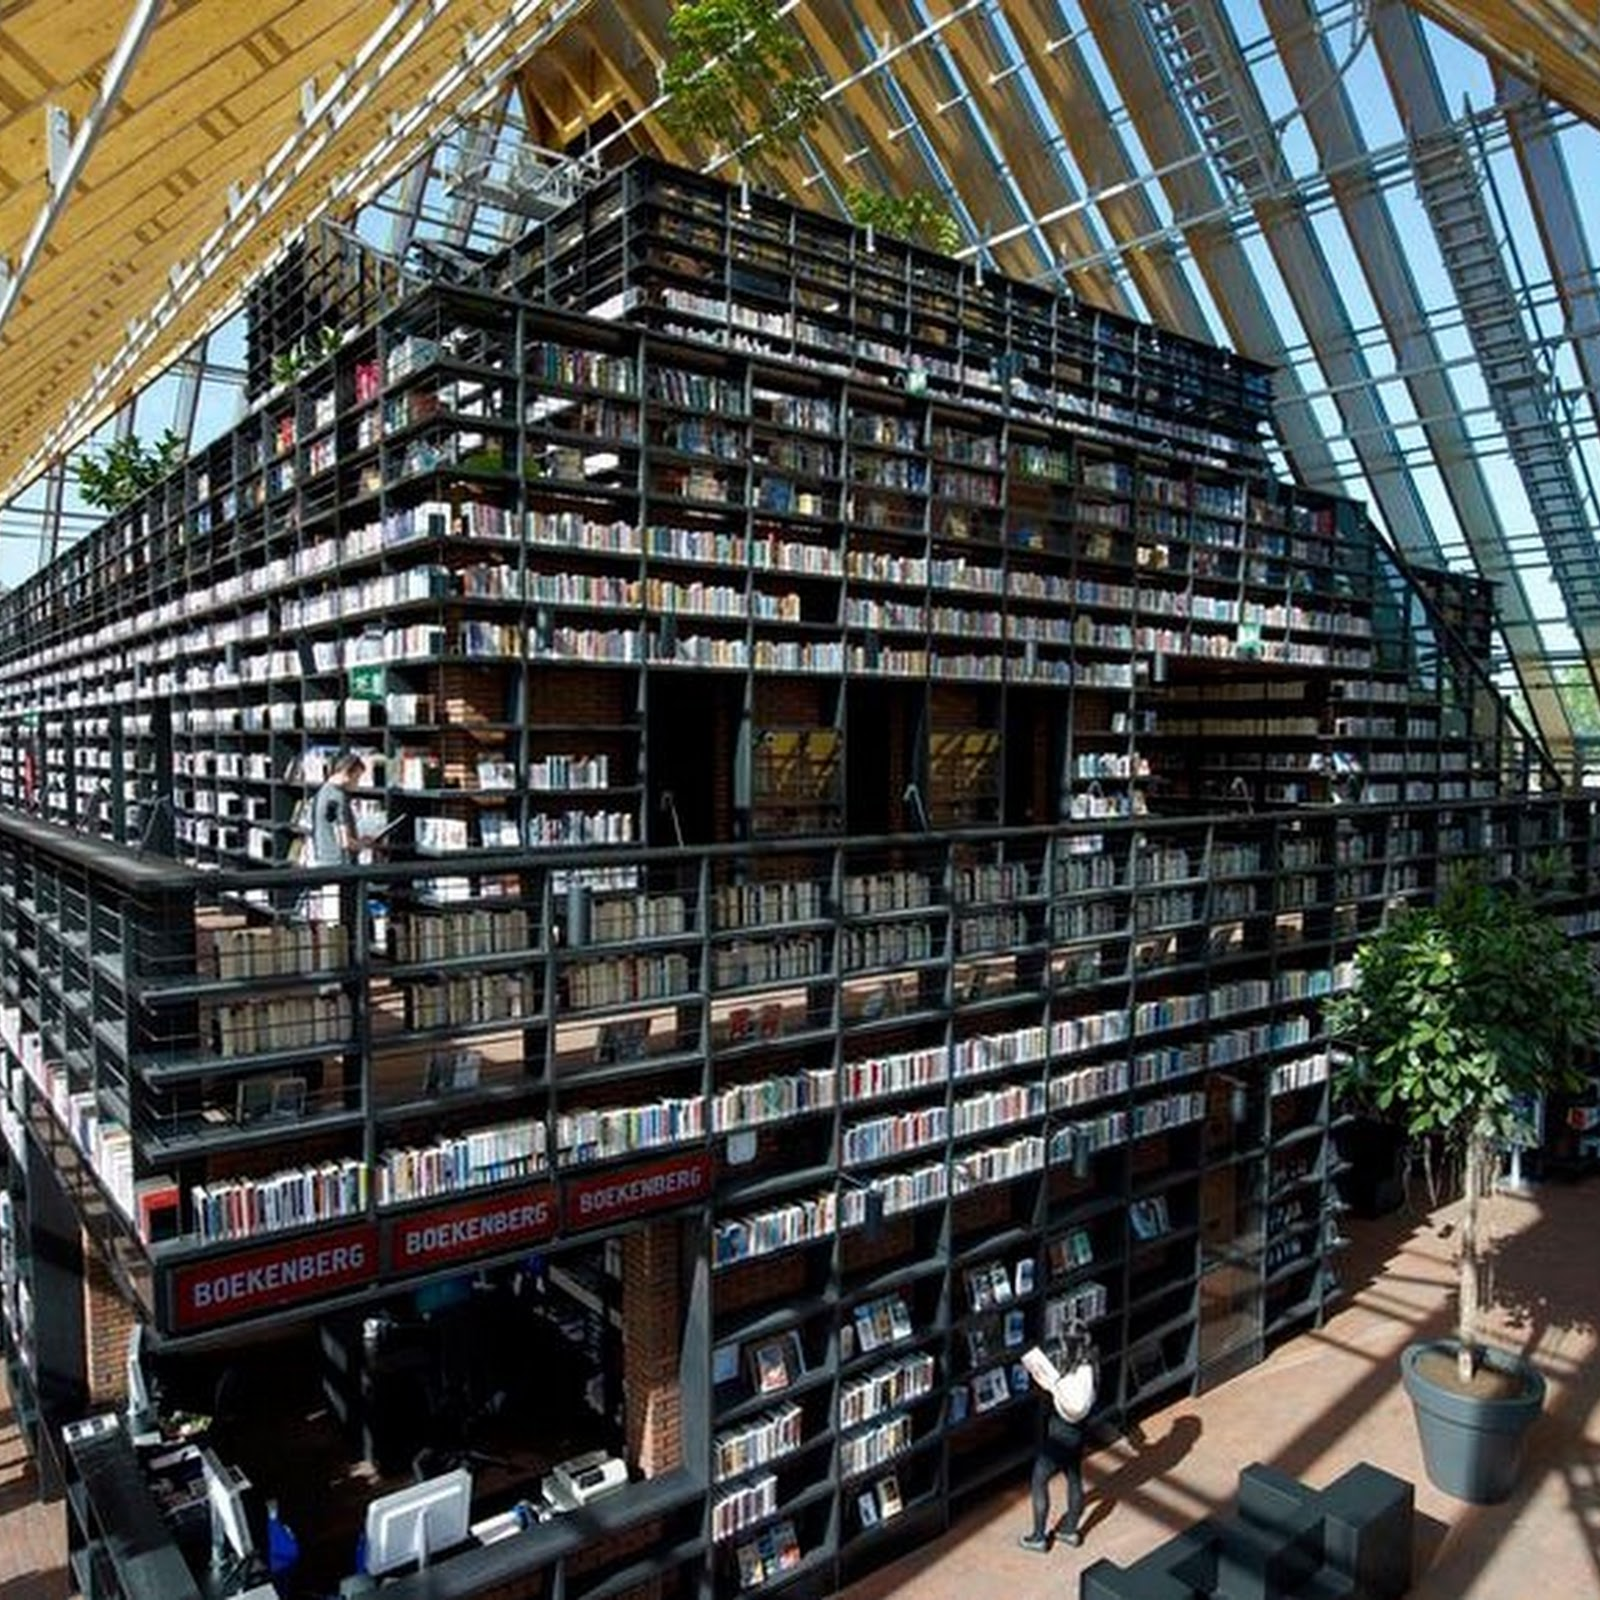 The Book Mountain in Spijkenisse, The Netherlands